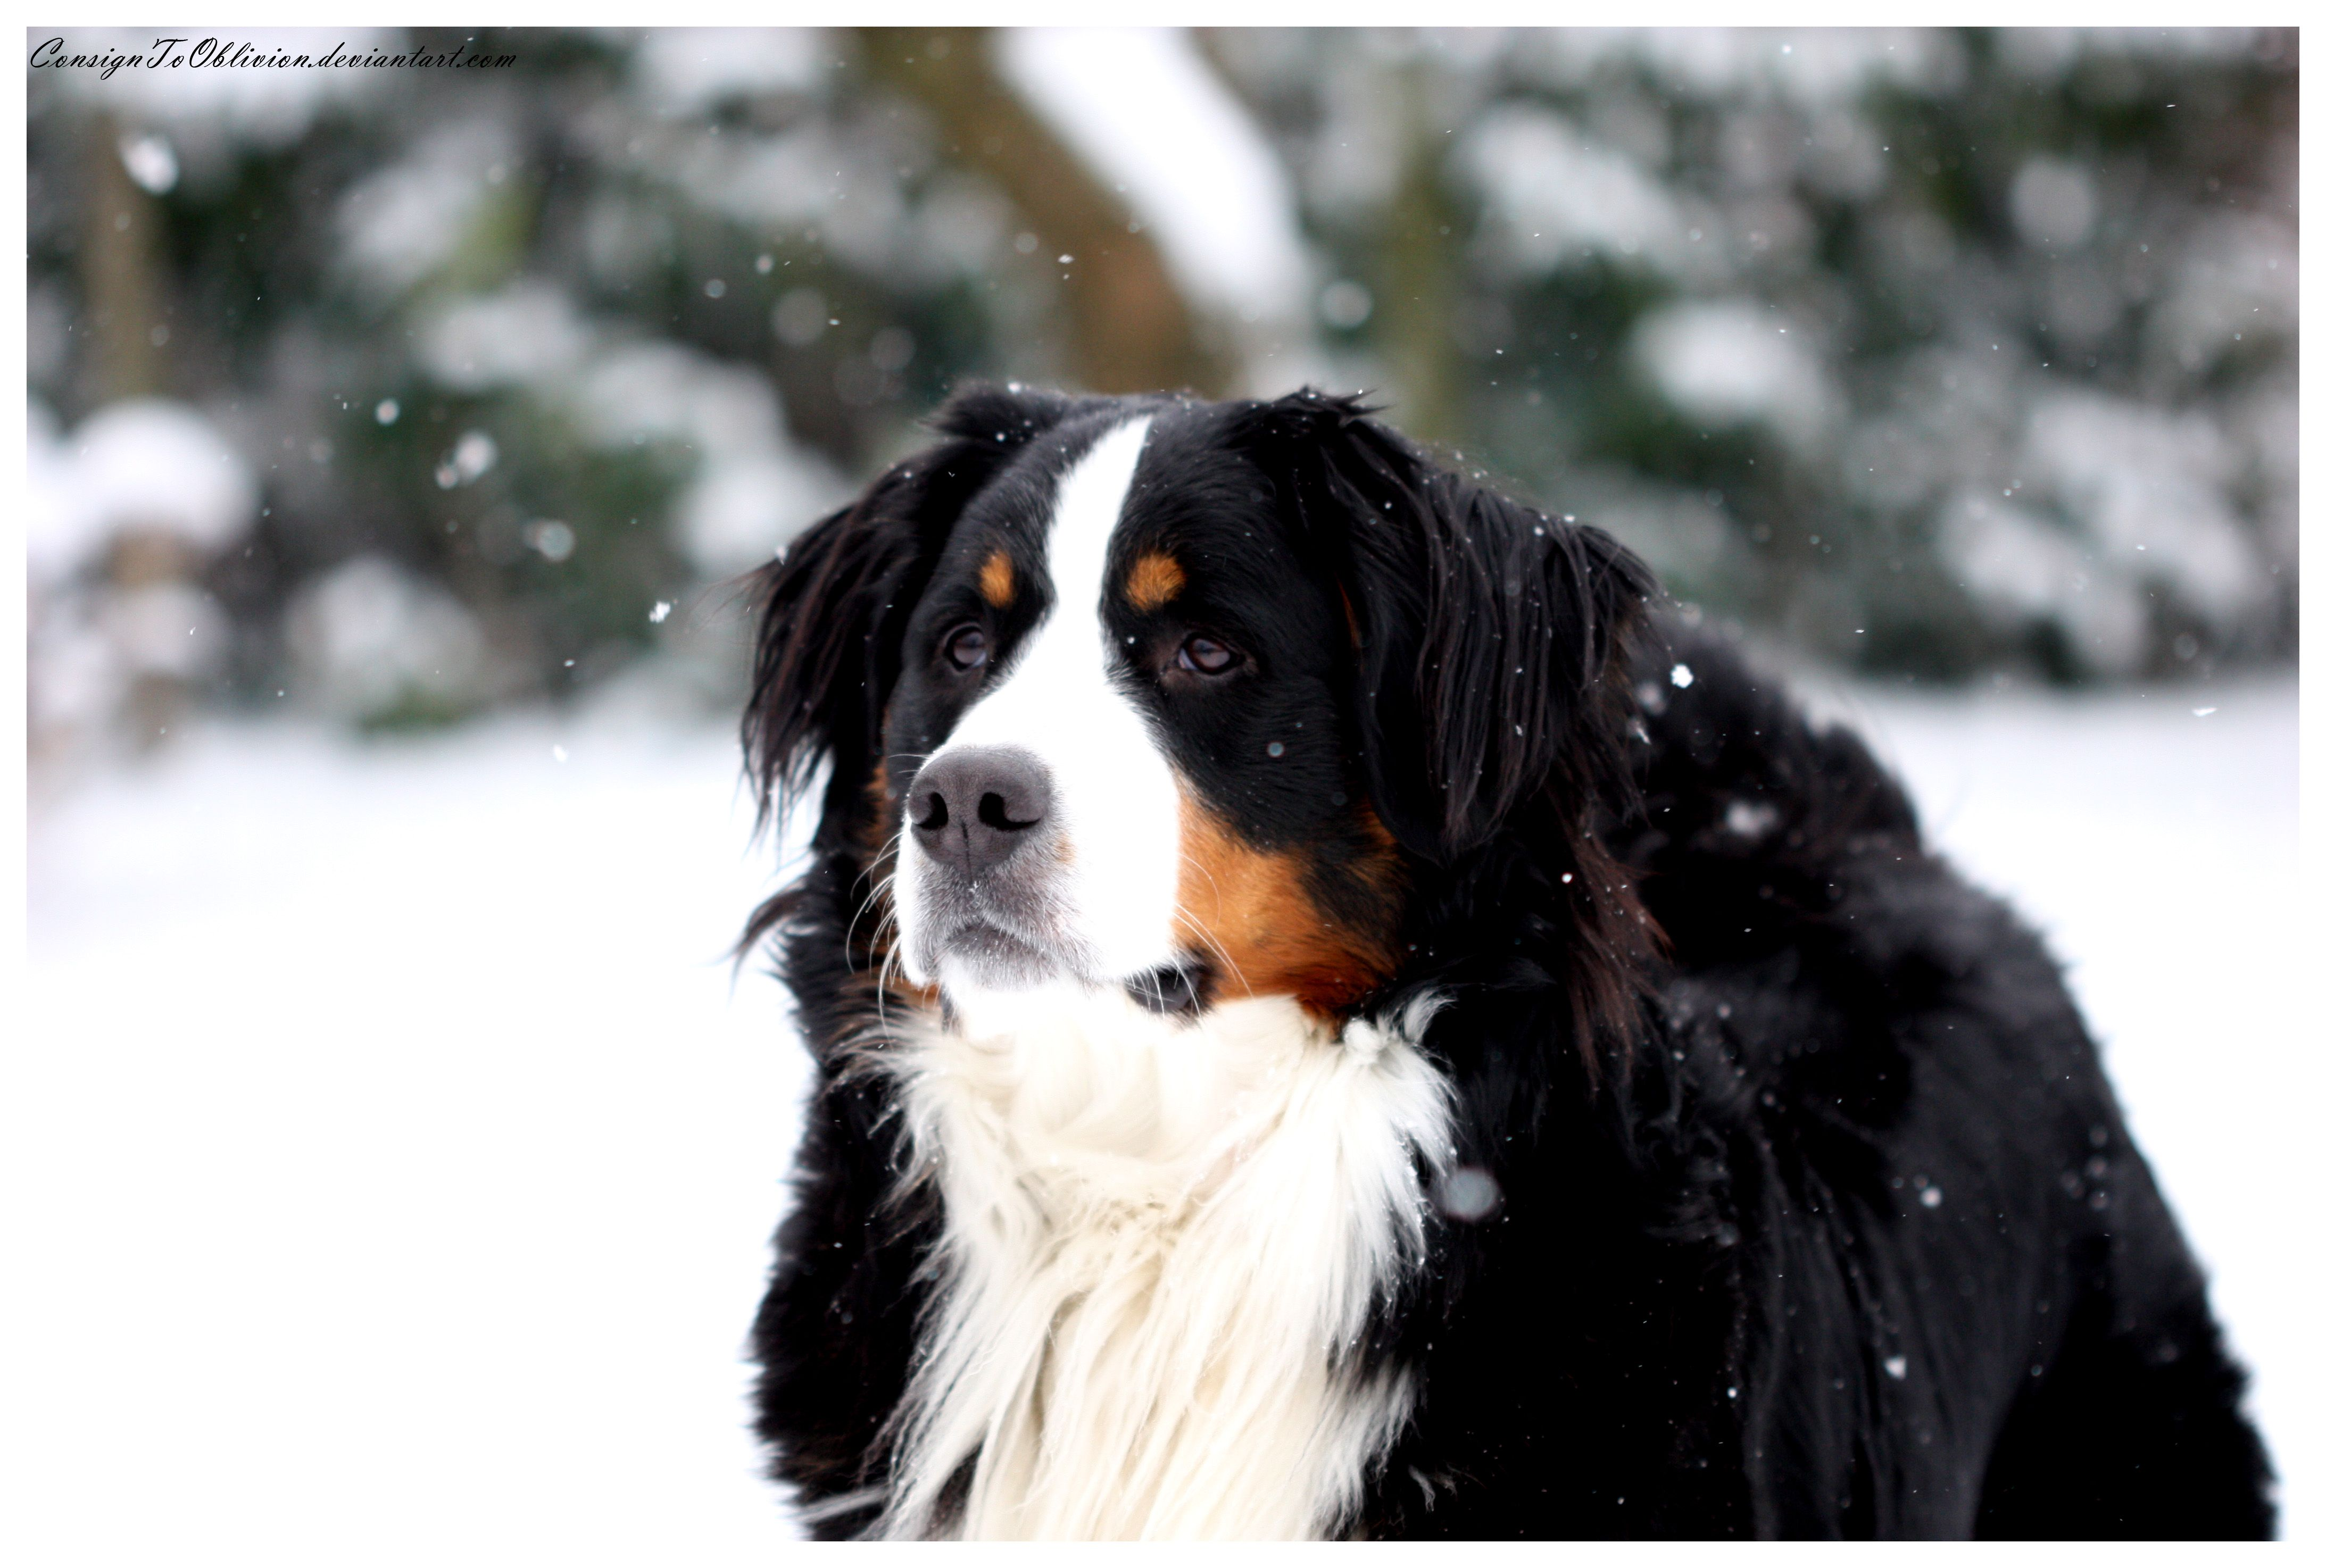 I Have Always Wanted A Berner Sennen Dog Dogs Bernese Mountain Dog Mountain Dogs